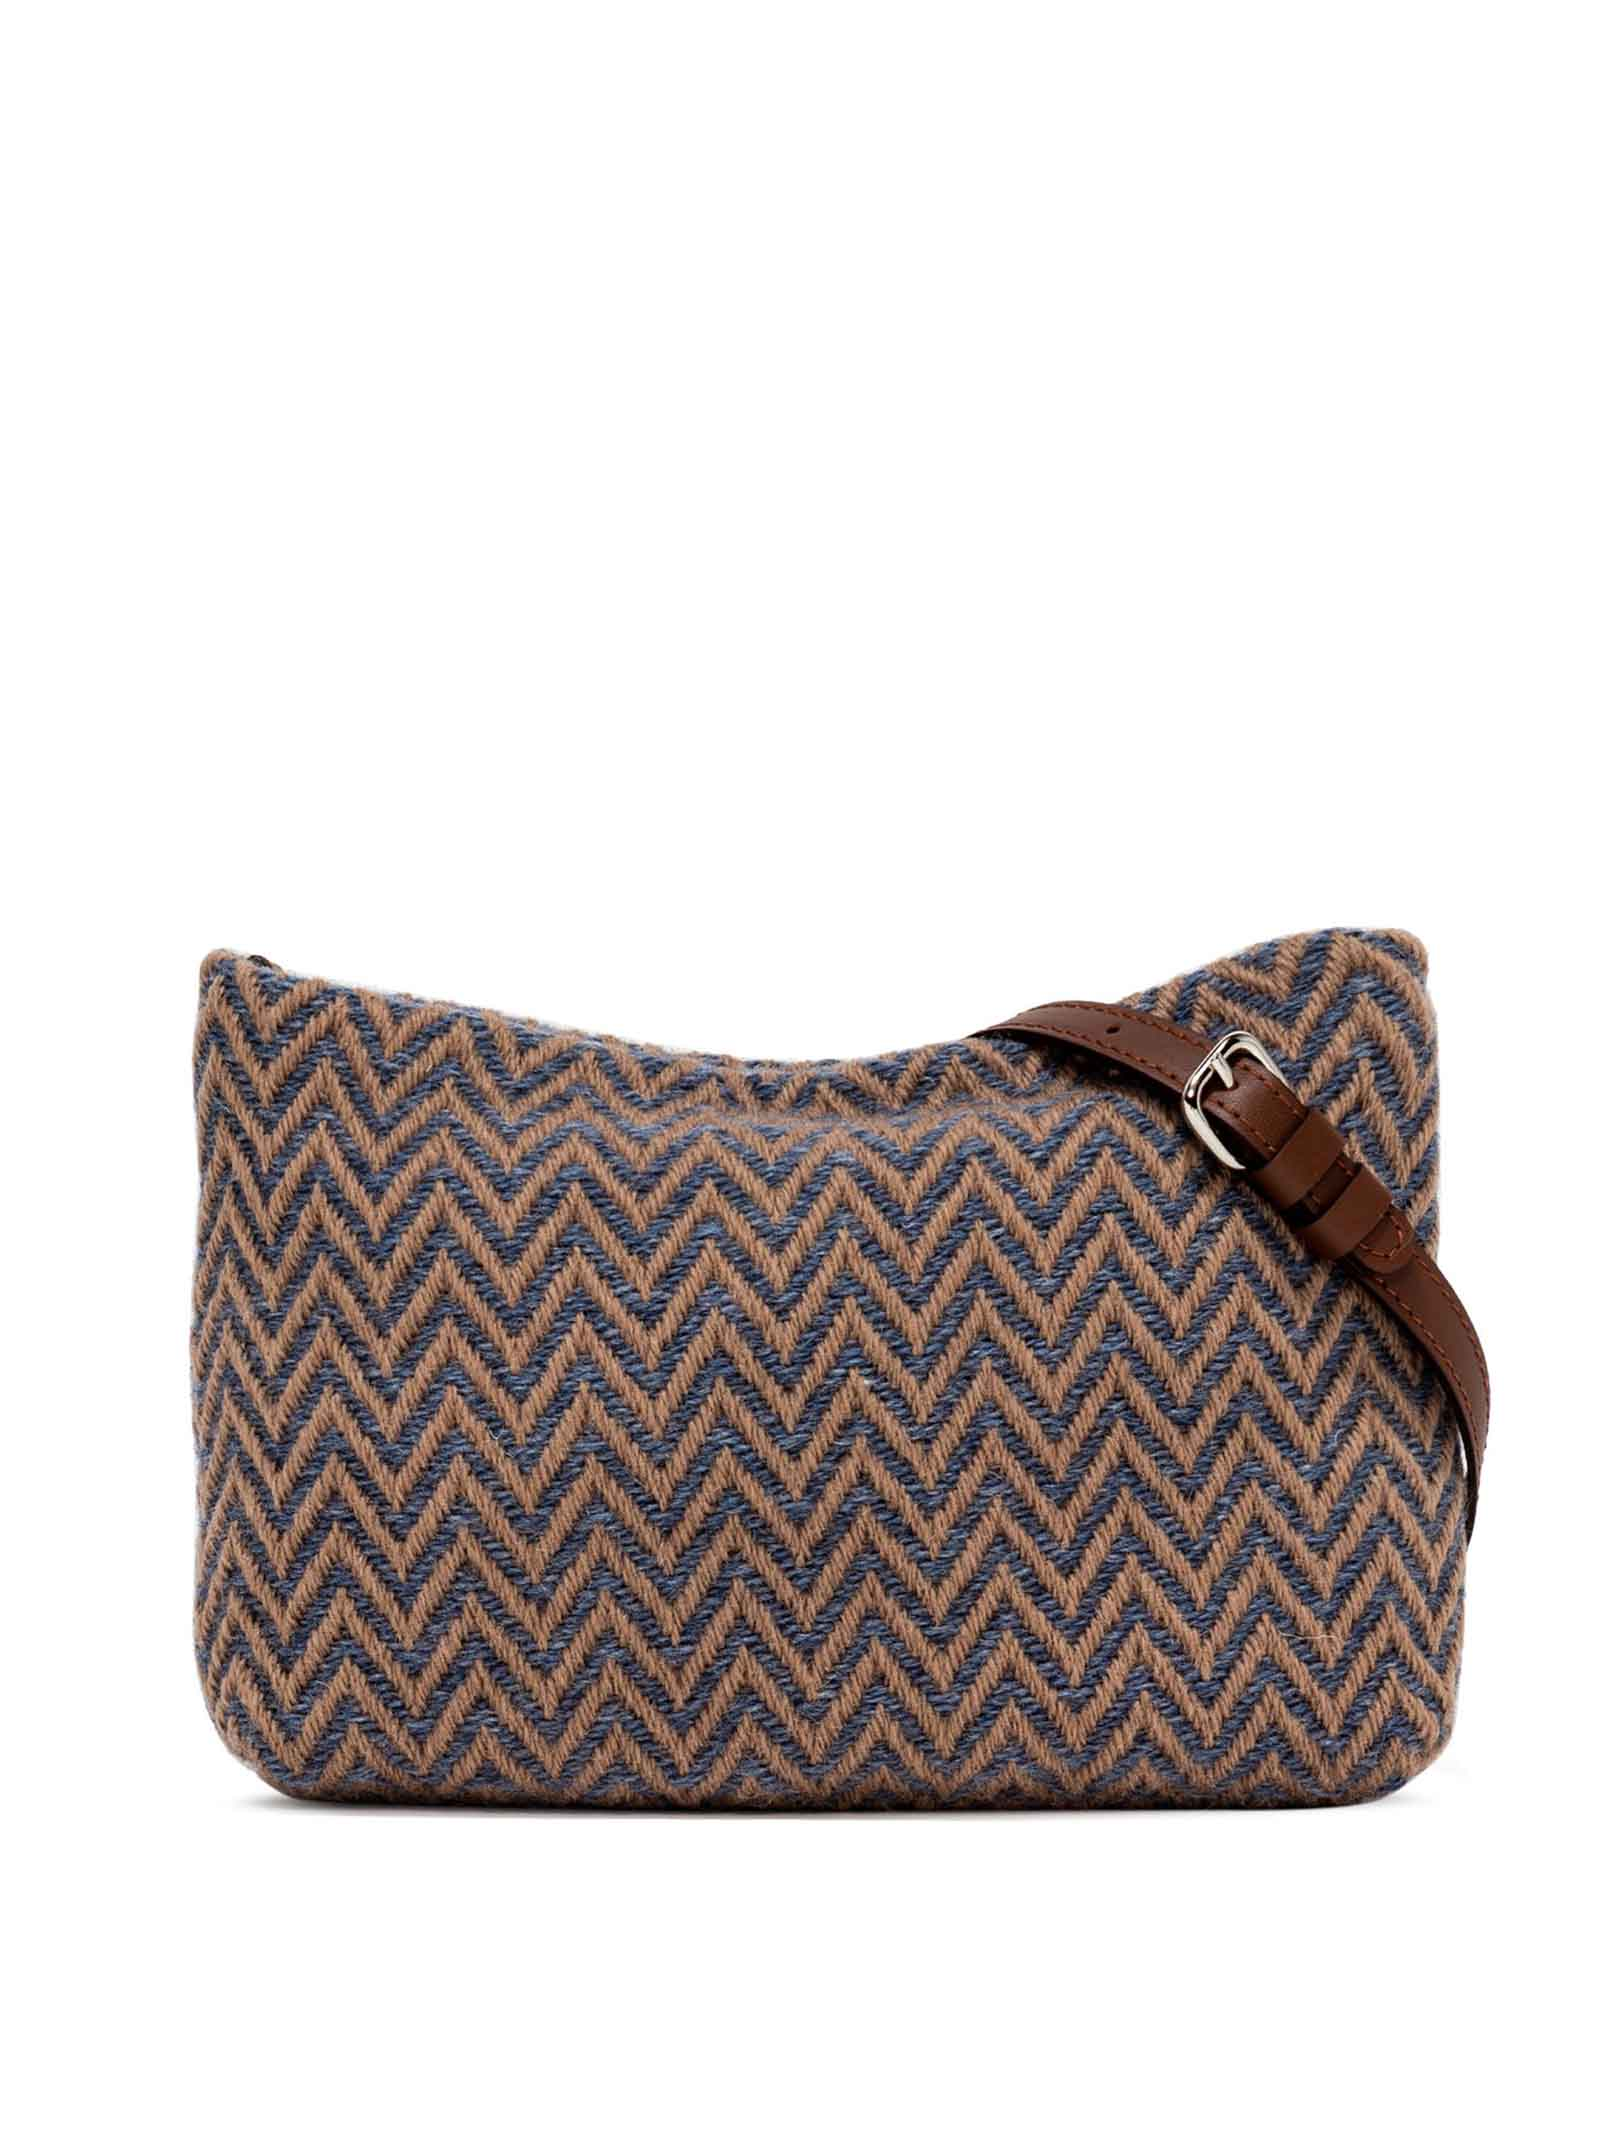 Woman's Shoulder Bag Mini Brenda In Brown Leather And Herringbone Fabric With Color Matched Chain And Adjustable And Detachable Cross-body Strap Gianni Chiarini | Bags and backpacks | BS826512161